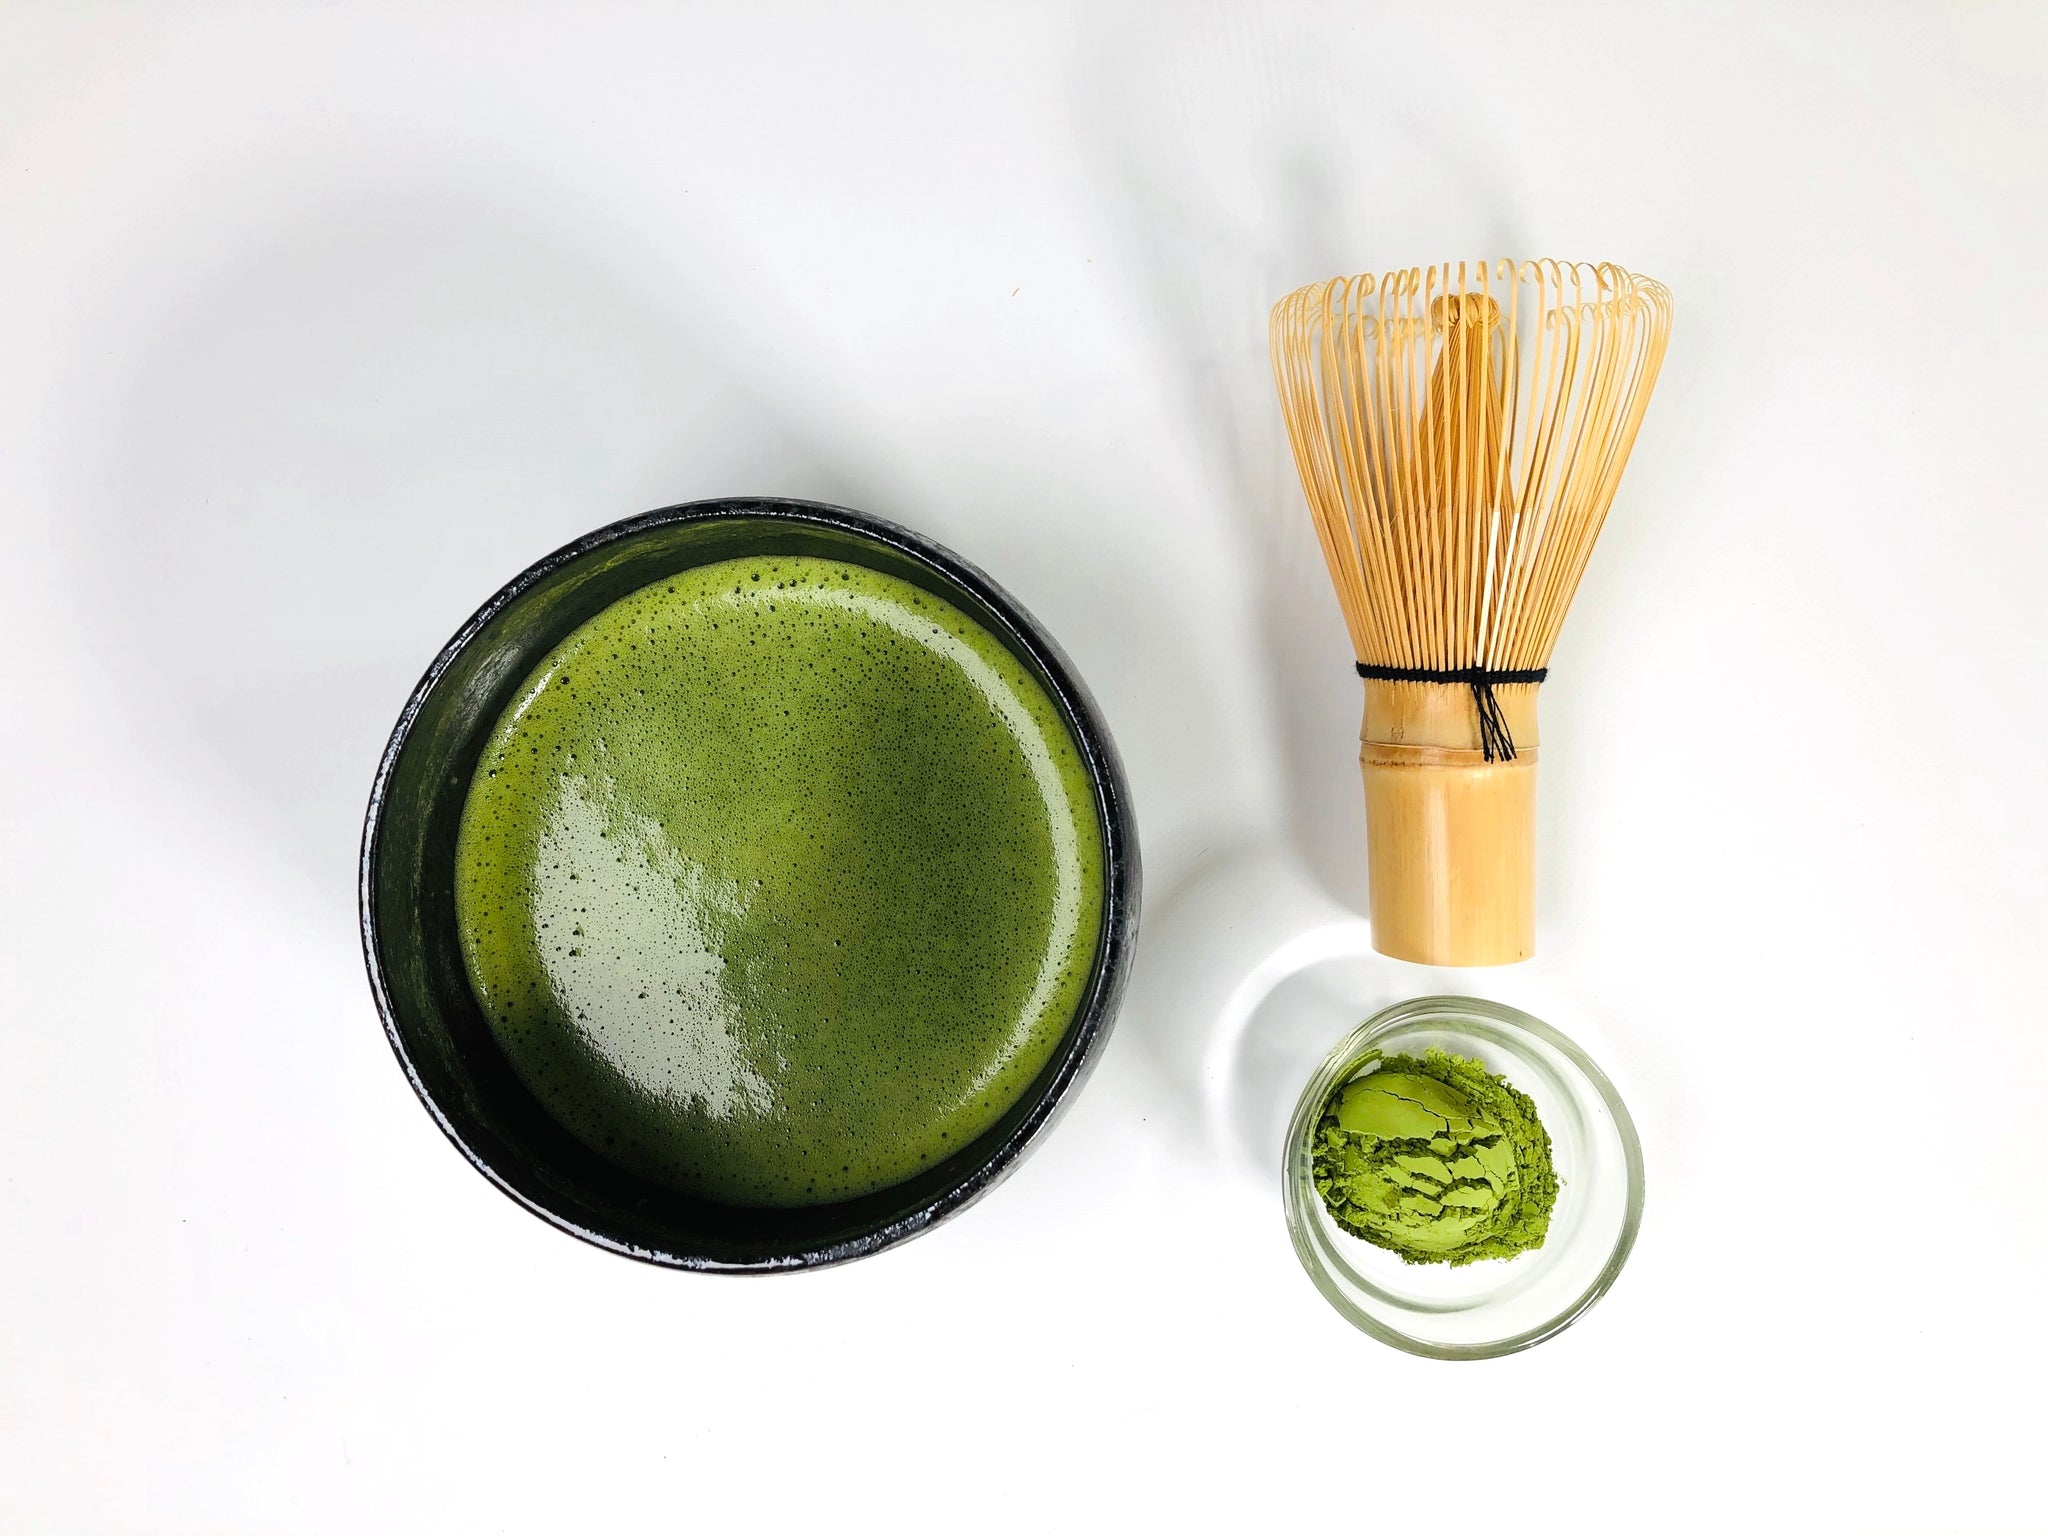 prepared matcha in bowl with matcha whisk and powdered matcha